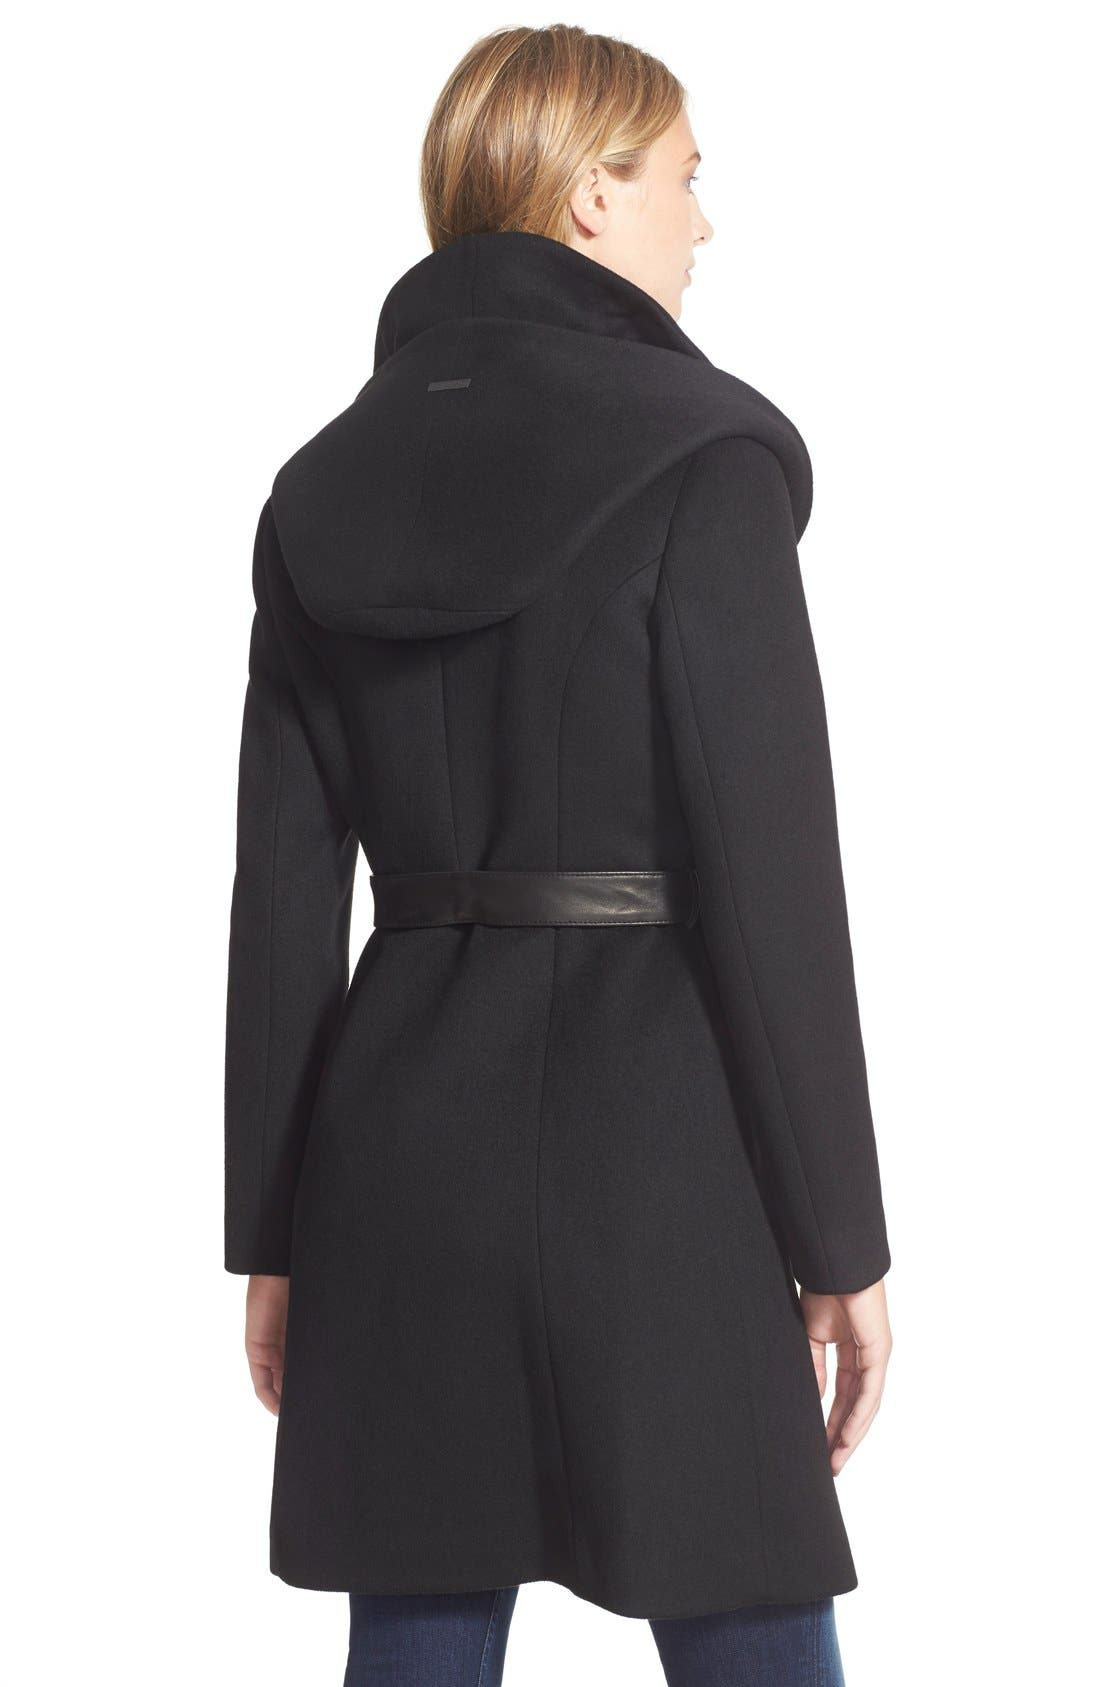 Alternate Image 2  - Soia & Kyo 'Arya' Hooded Wool Blend Coat with Belt